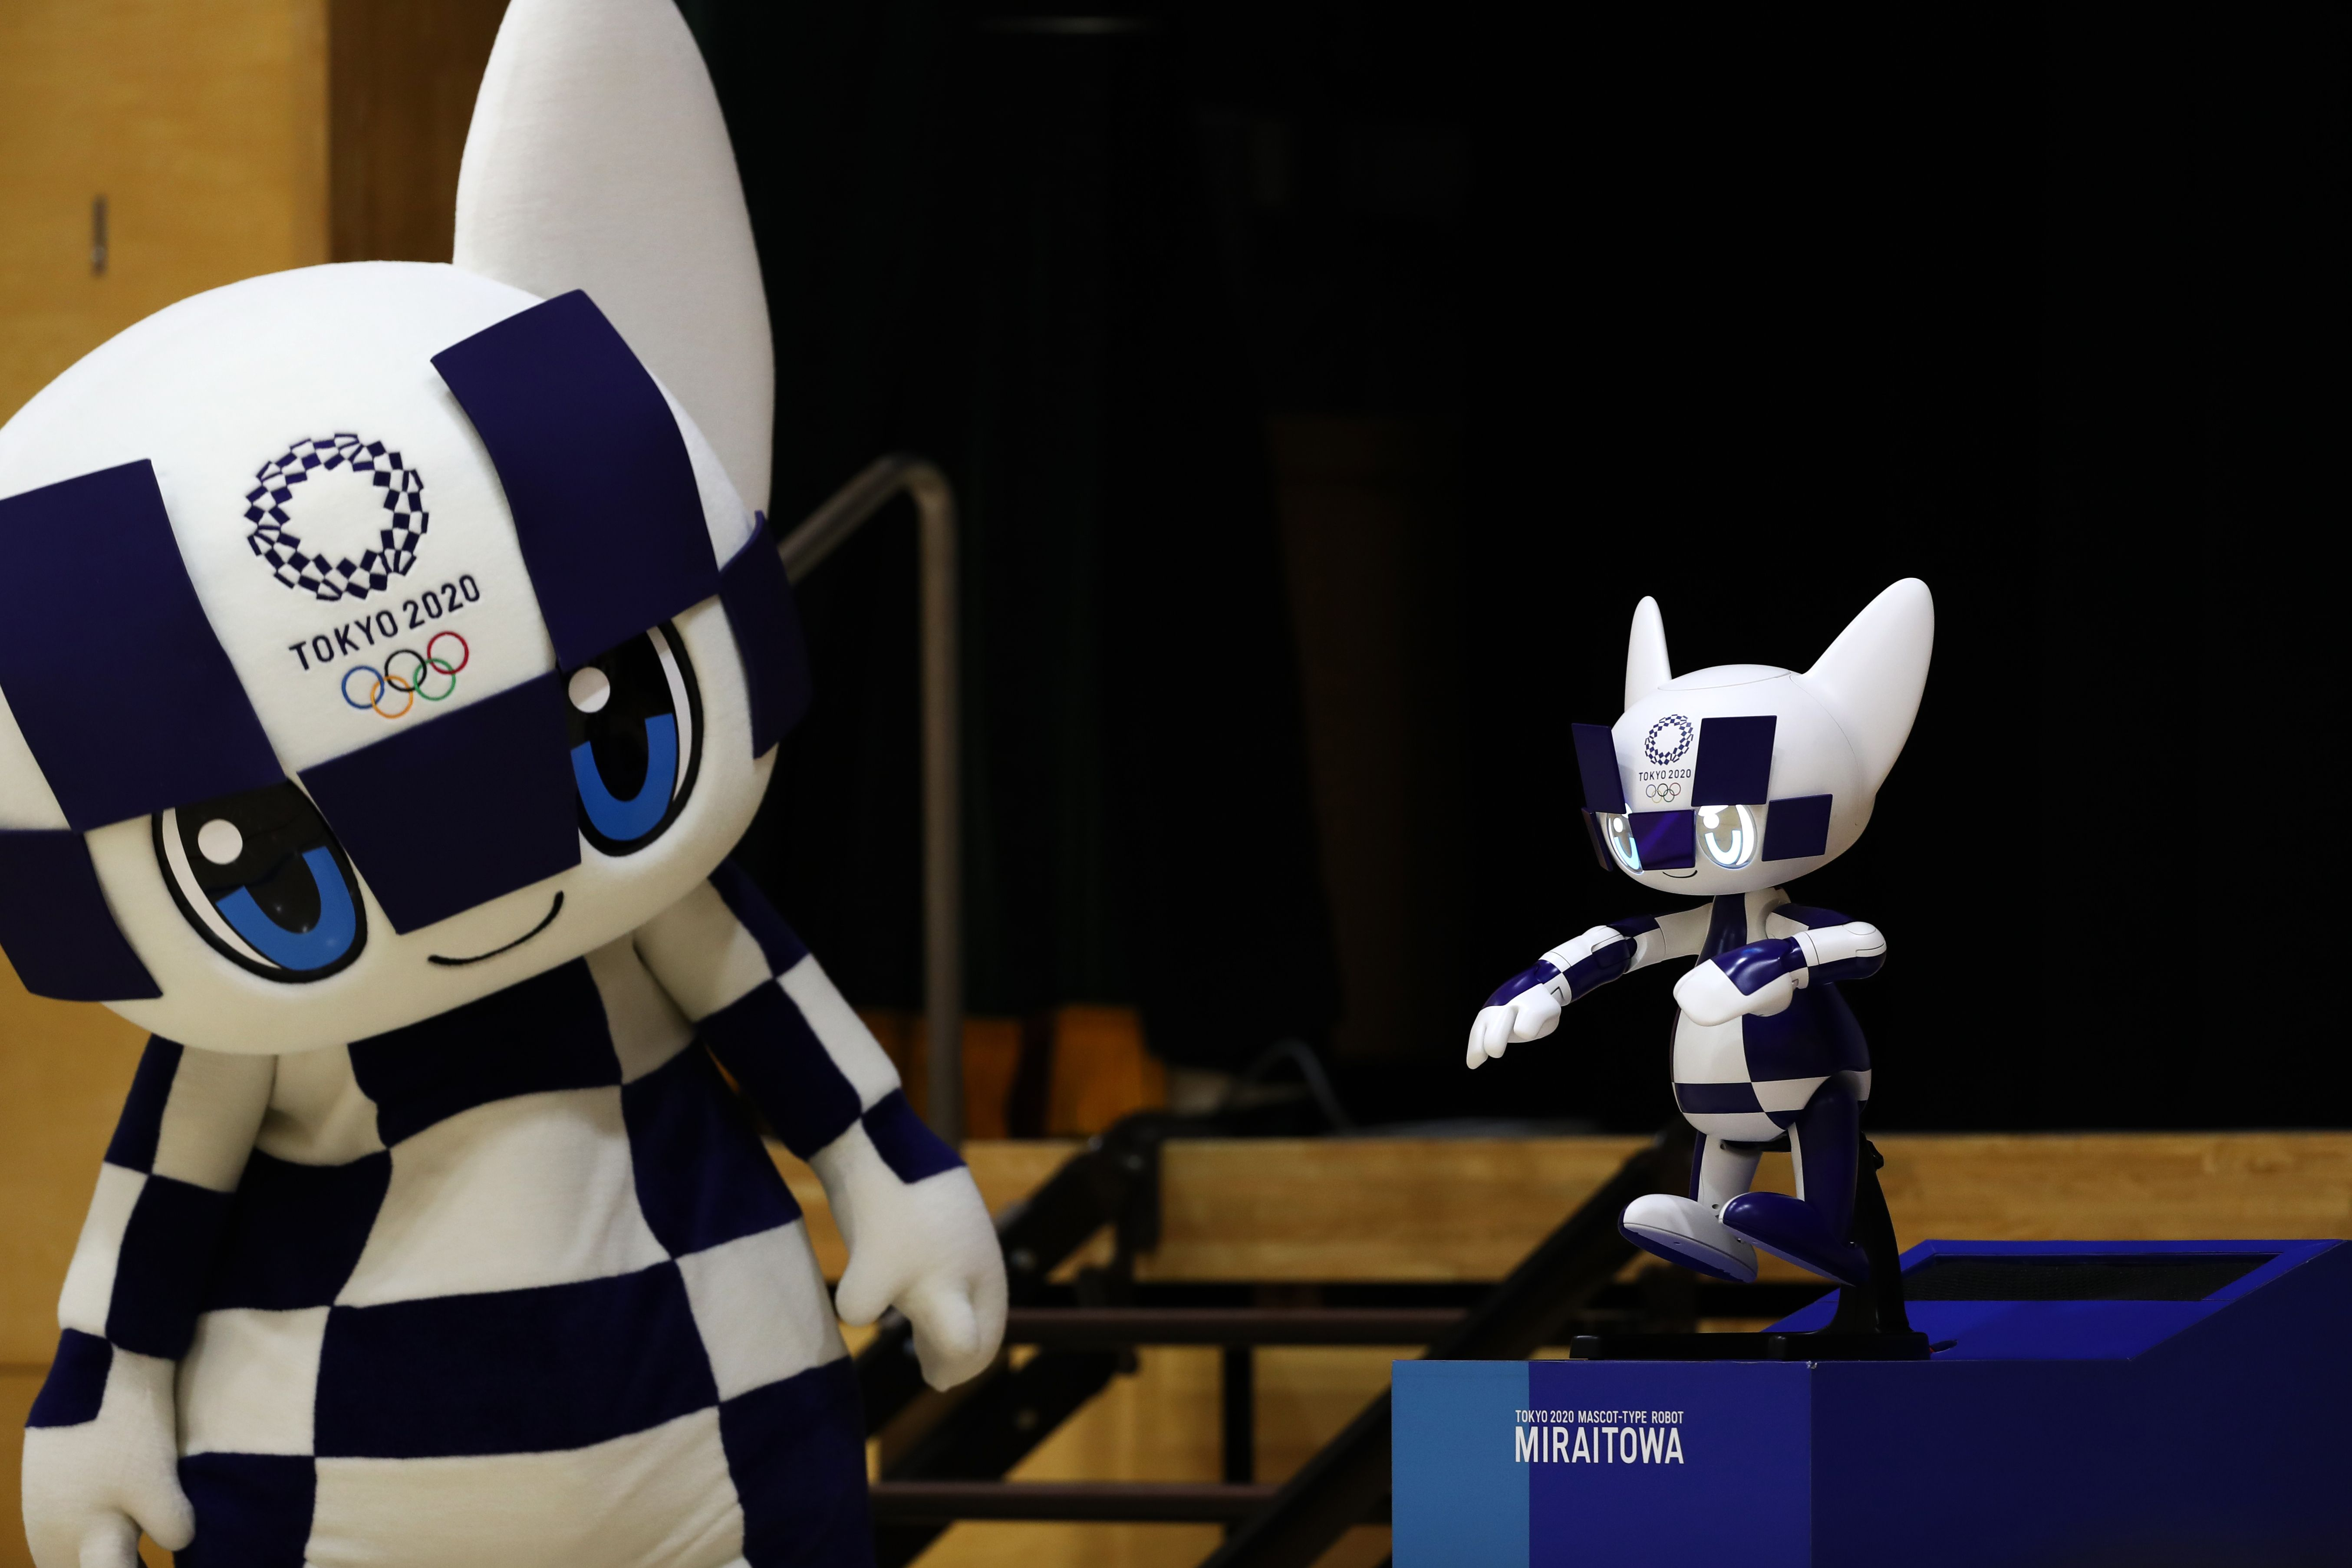 Tokyo 2020 Olympic Games mascot Miraitowa attend a ceremony at a Tokyo elementary school on Nov. 18, 2019.